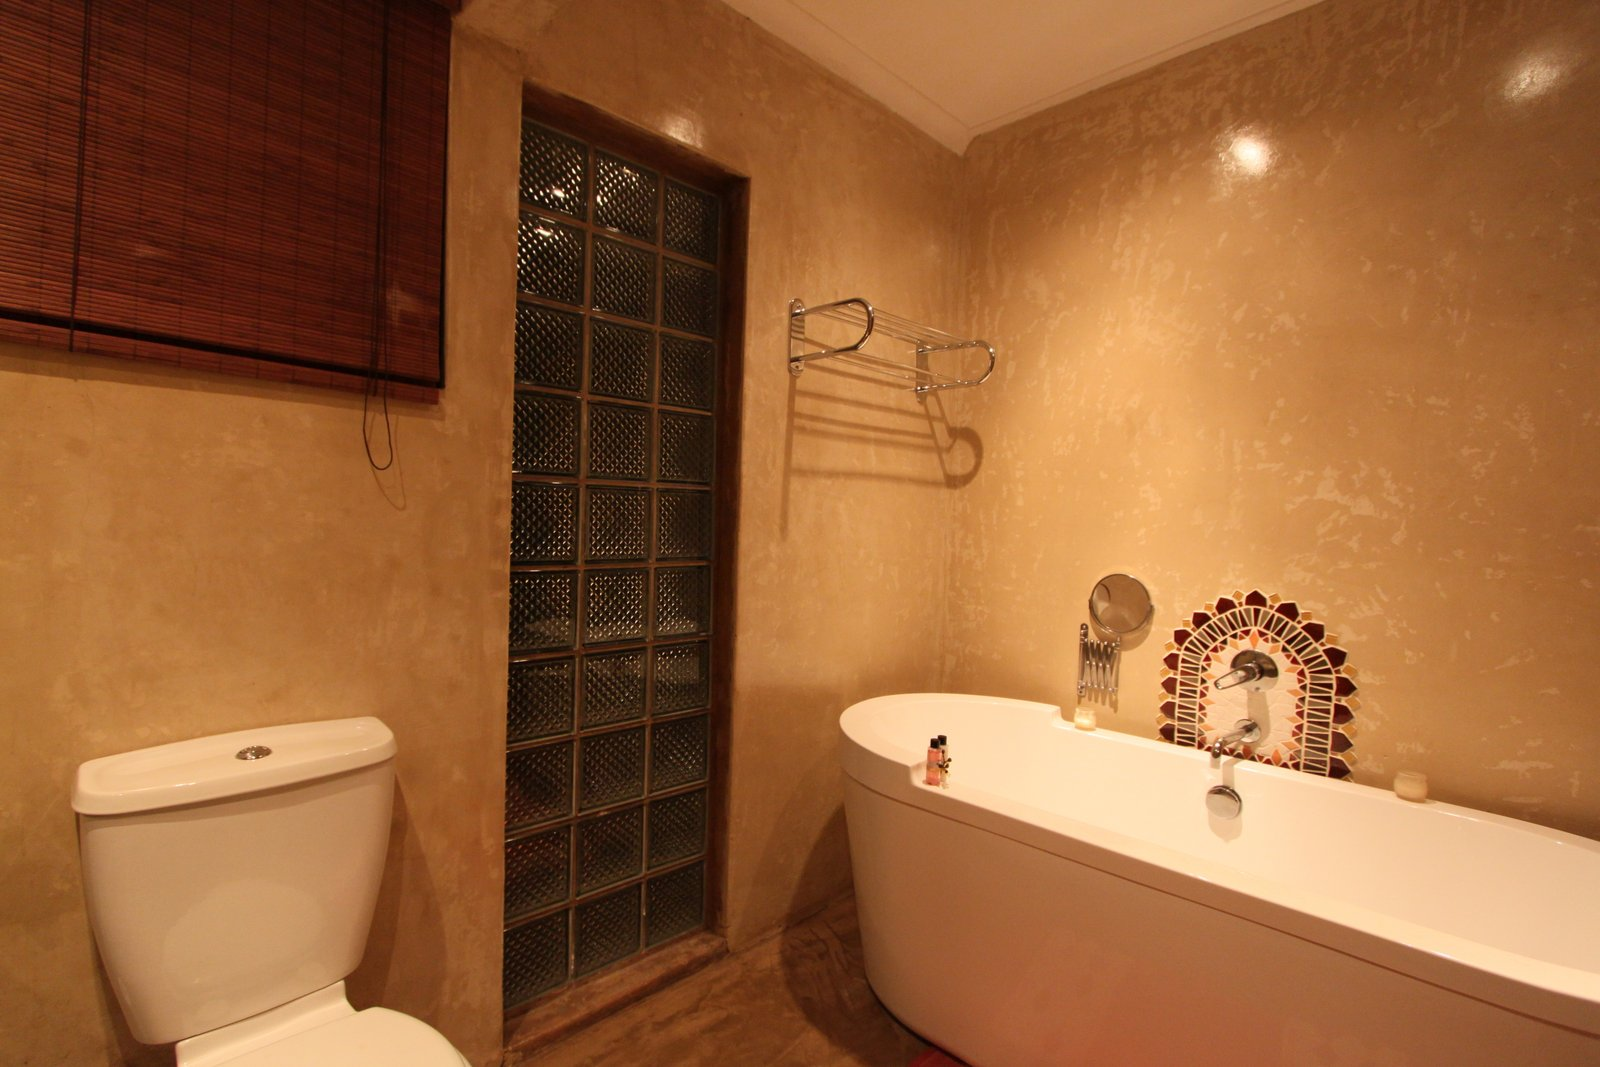 L4-Bathroom3.JPG